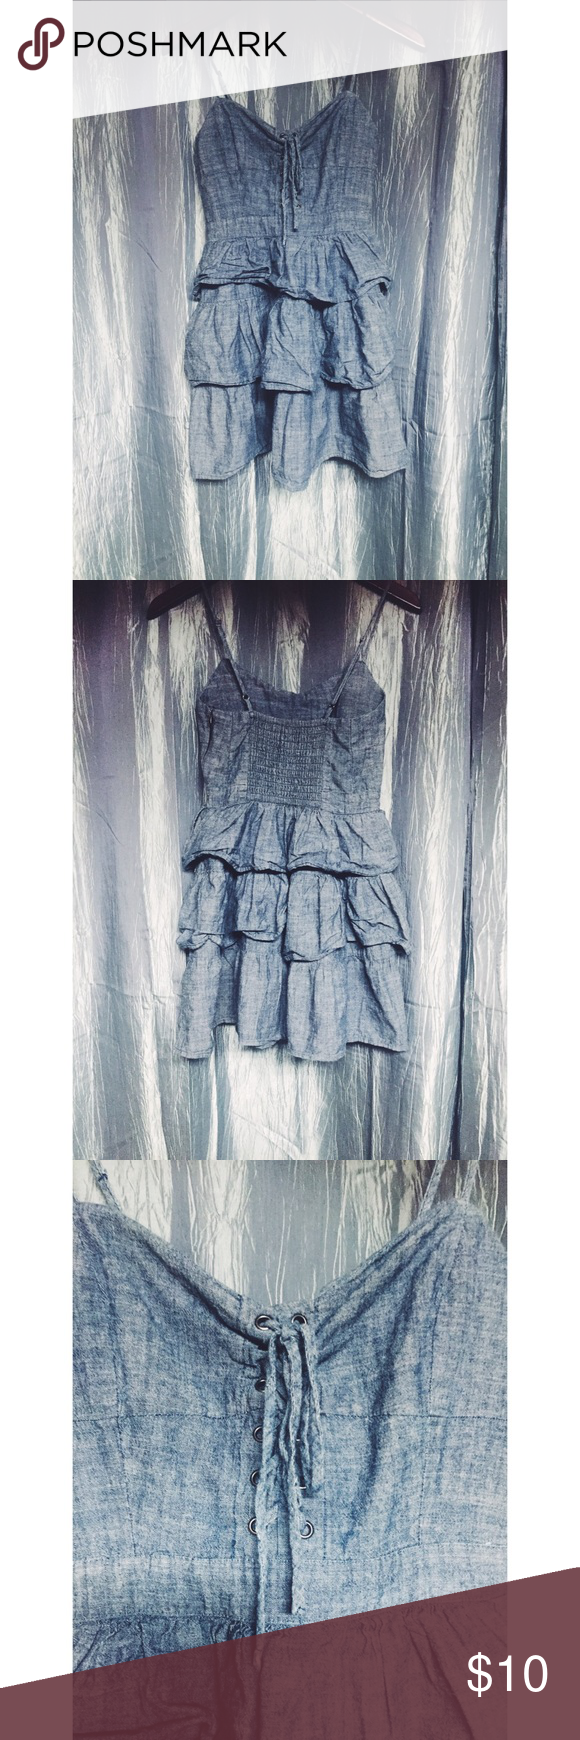 Forever 21 Ruffle Dress! This dress is very fun! It is a chambray material. It laces up in the front and has built in padding! It is in great condition but I will add that it can sometimes be a challenge to iron. I suggest hang drying this one! Don't forget to check us out at maggiesuniqueboutique.weebly.com! Forever 21 Dresses Mini